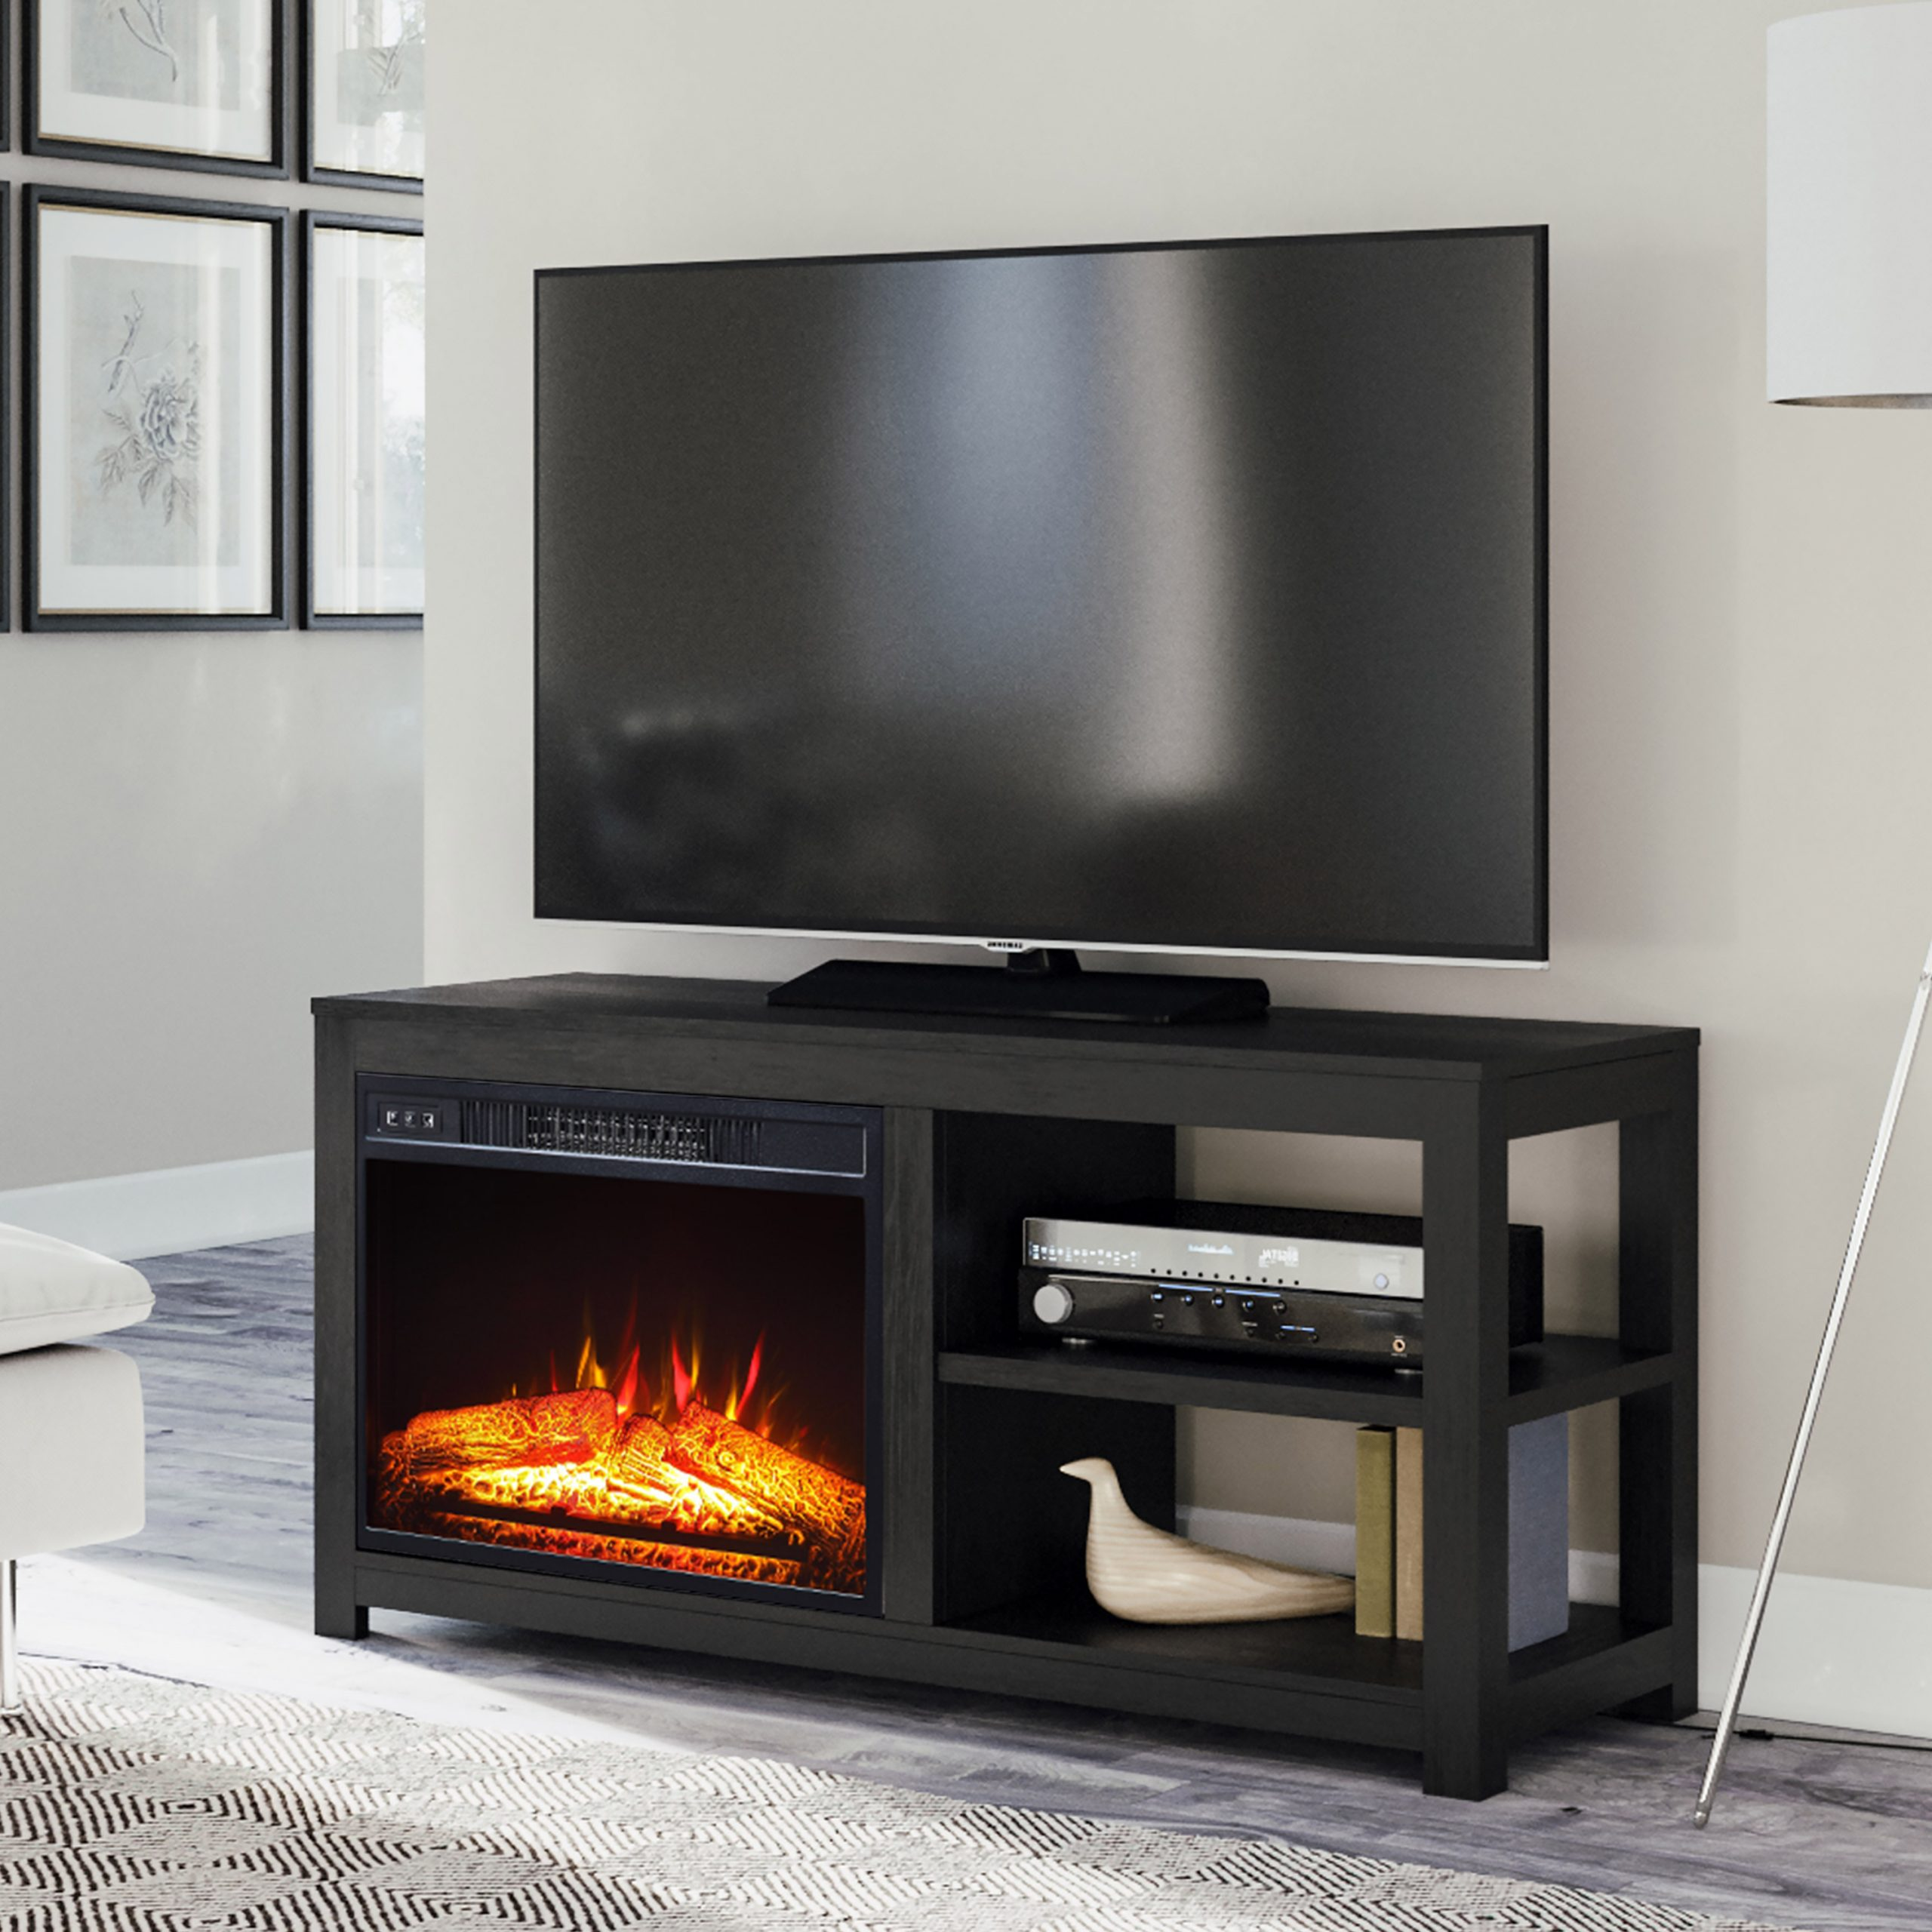 Mainstays 2 Shelf Media Fireplace Tv Stand For Flat Panel Regarding Newest Fireplace Media Console Tv Stands With Weathered Finish (View 6 of 10)